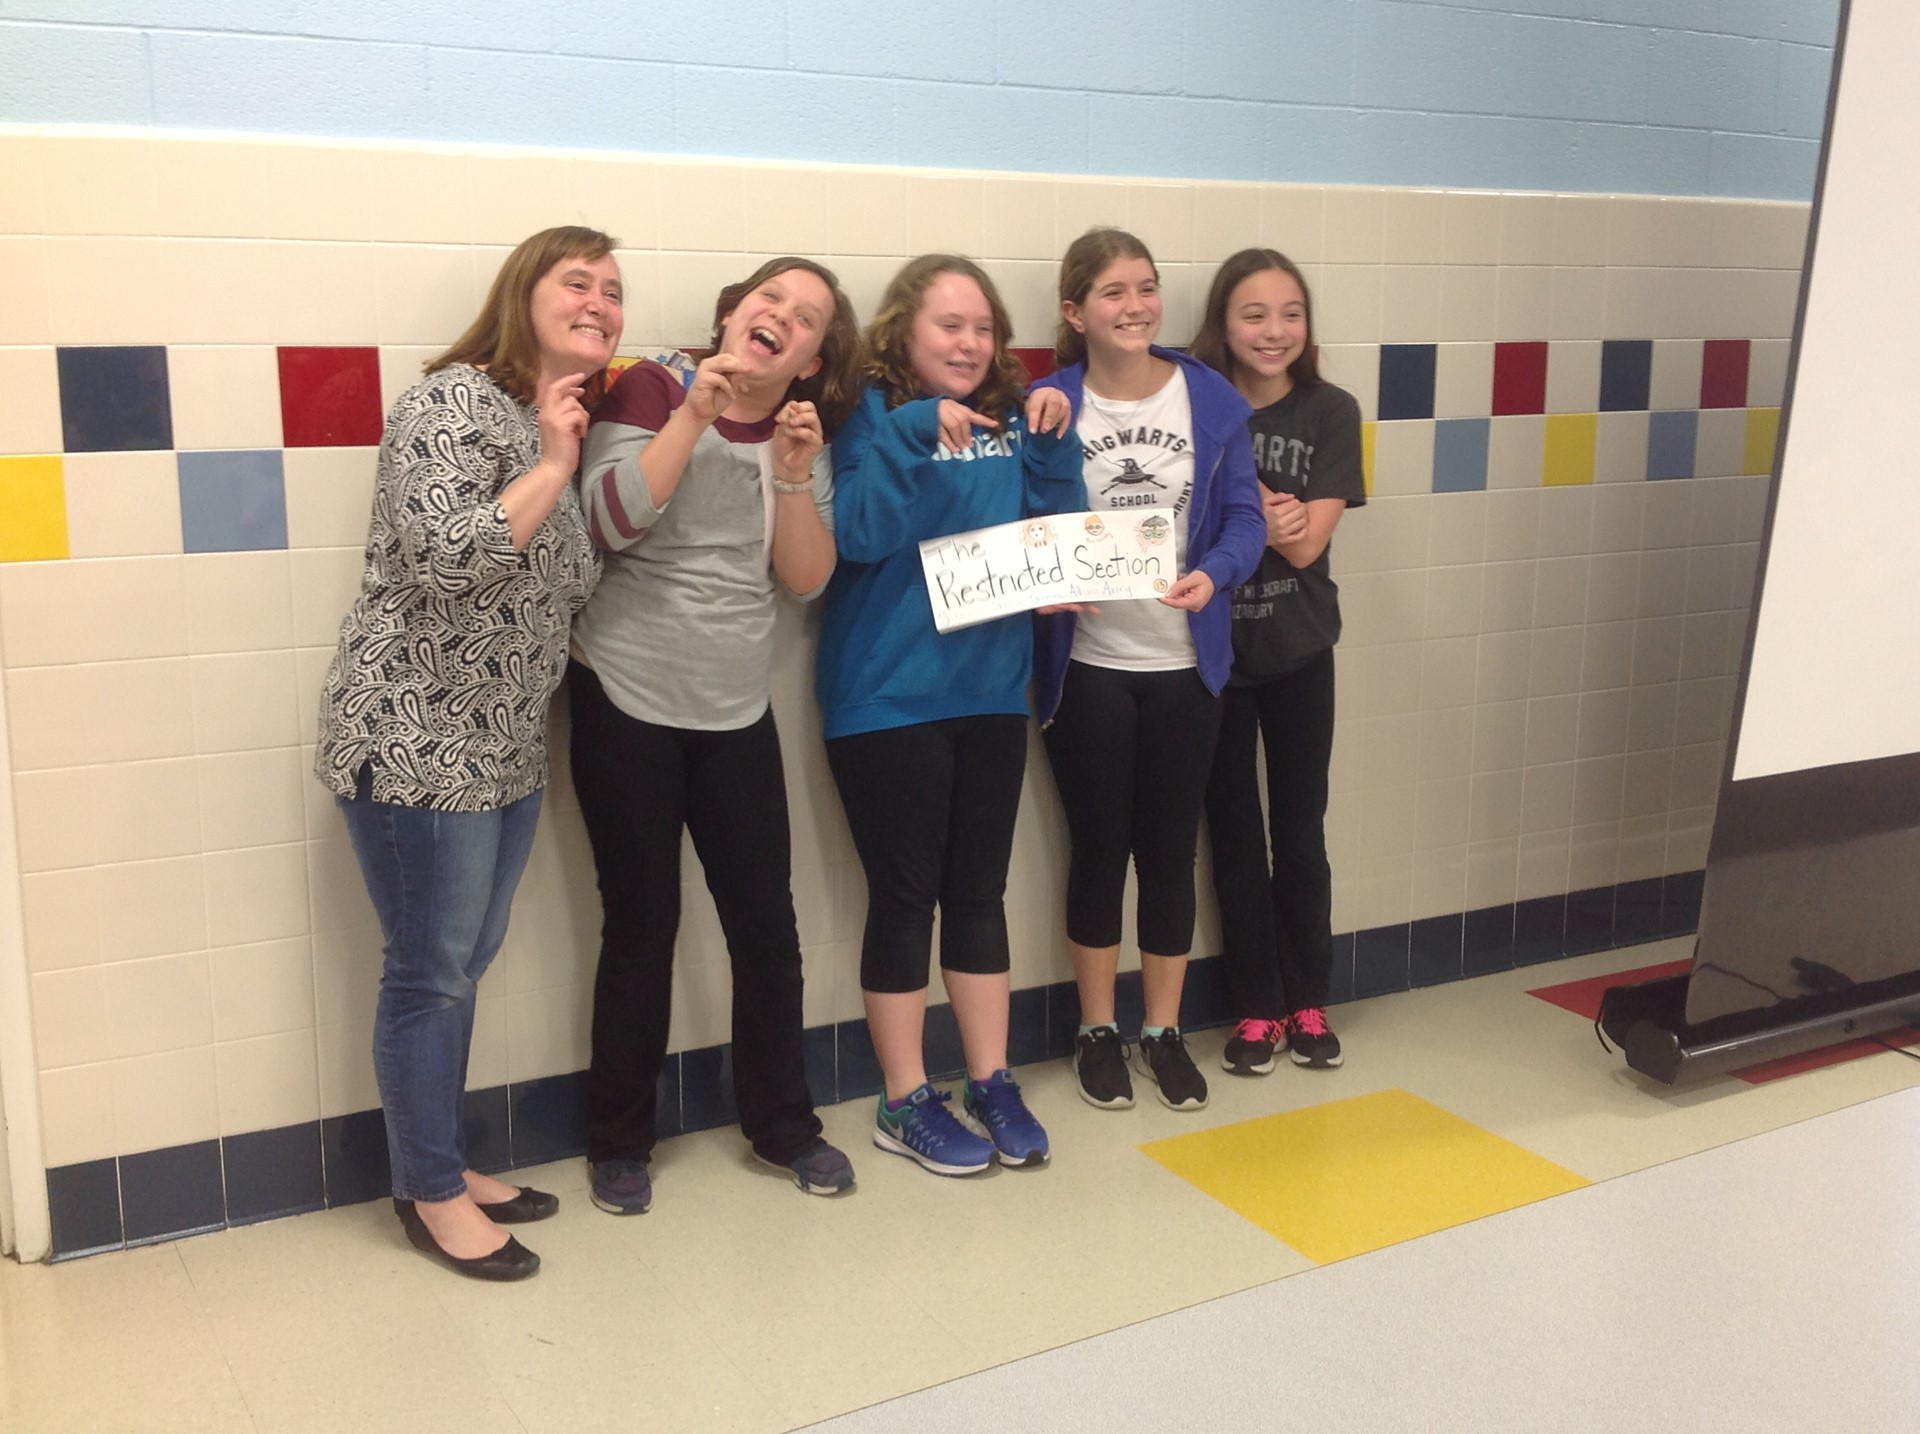 1st Place Winners of Battle of the Books:The Restricted Section